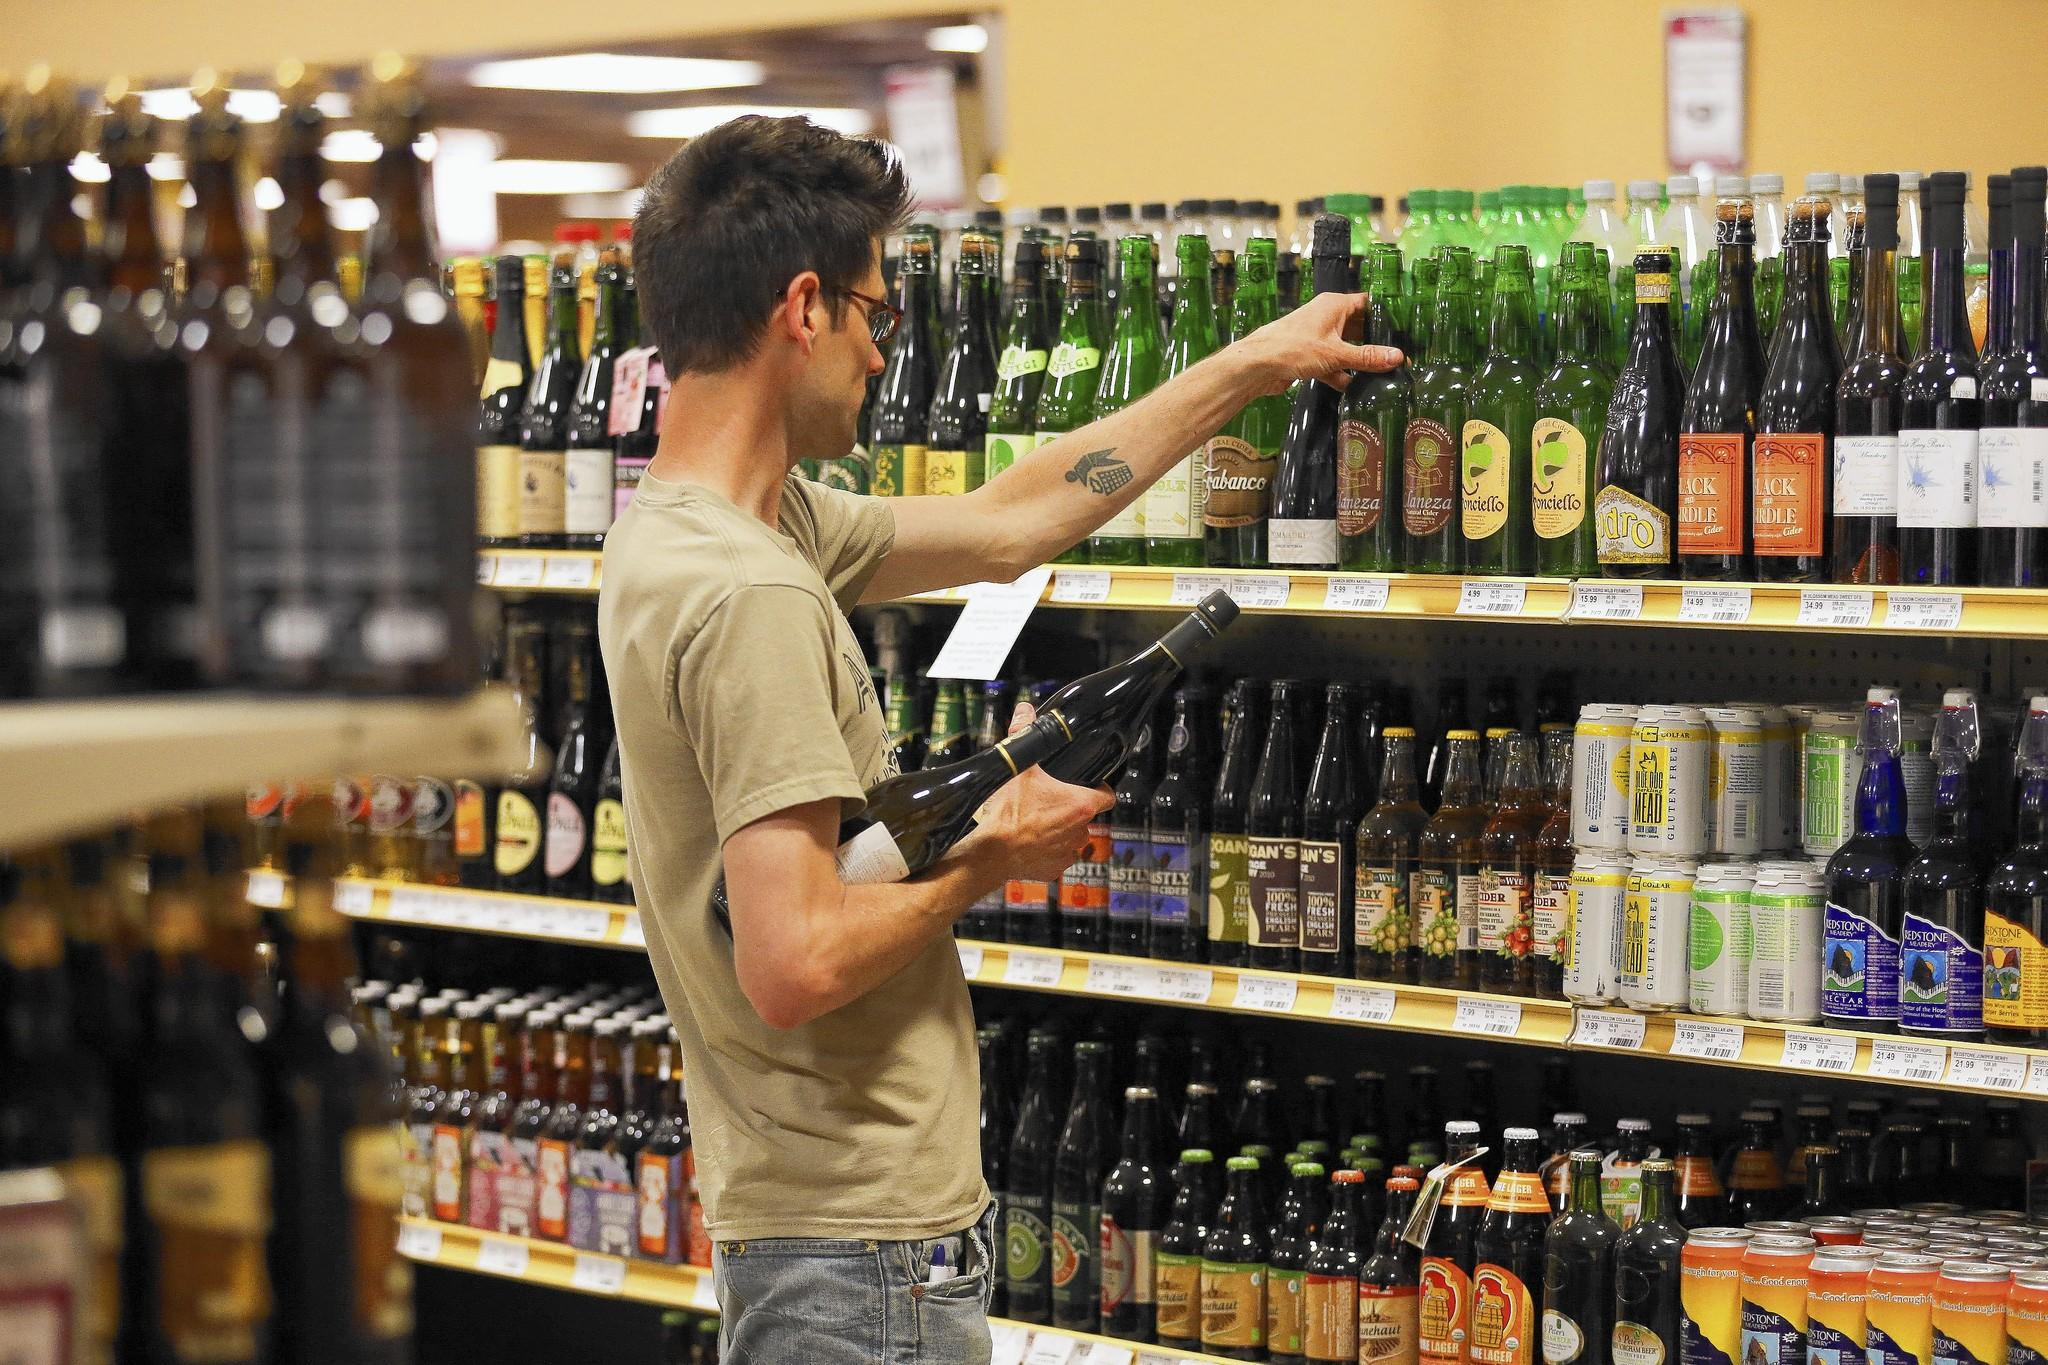 Ben Walker, of Chicago, shops for cider at Binny's at 1720 N. Marcey St. The alcoholic drink, made from fermented apple juice, is staging what some consider to be a long overdue comeback in America.